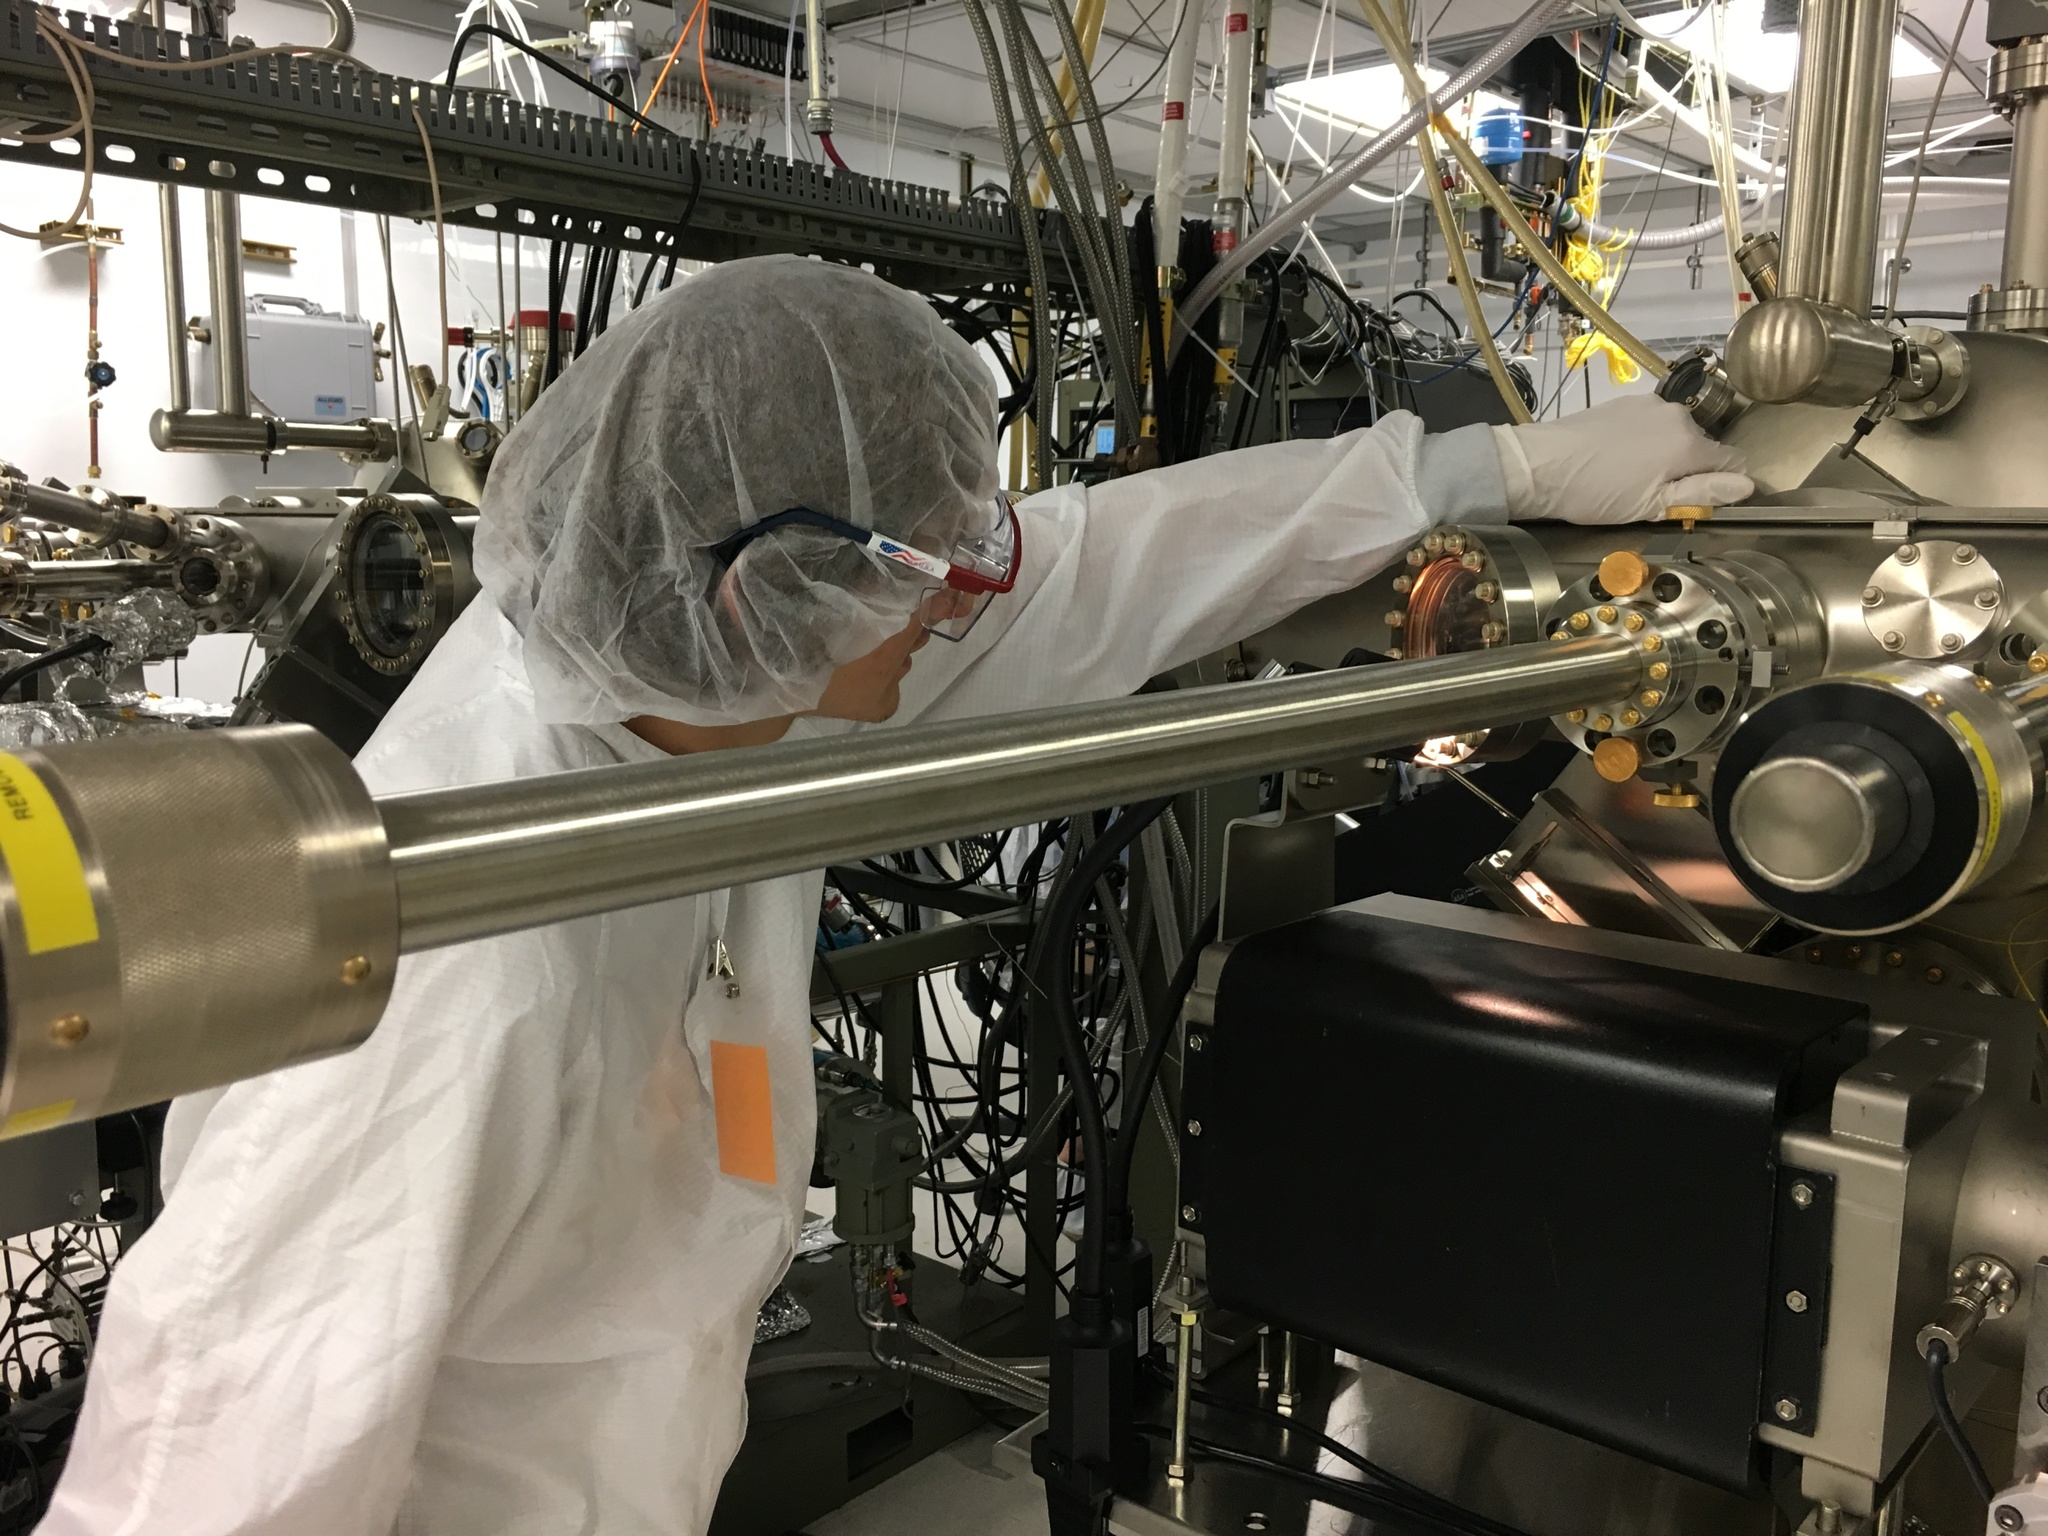 Andrew MacArthur, a past REU student, conducts research in a clean room.